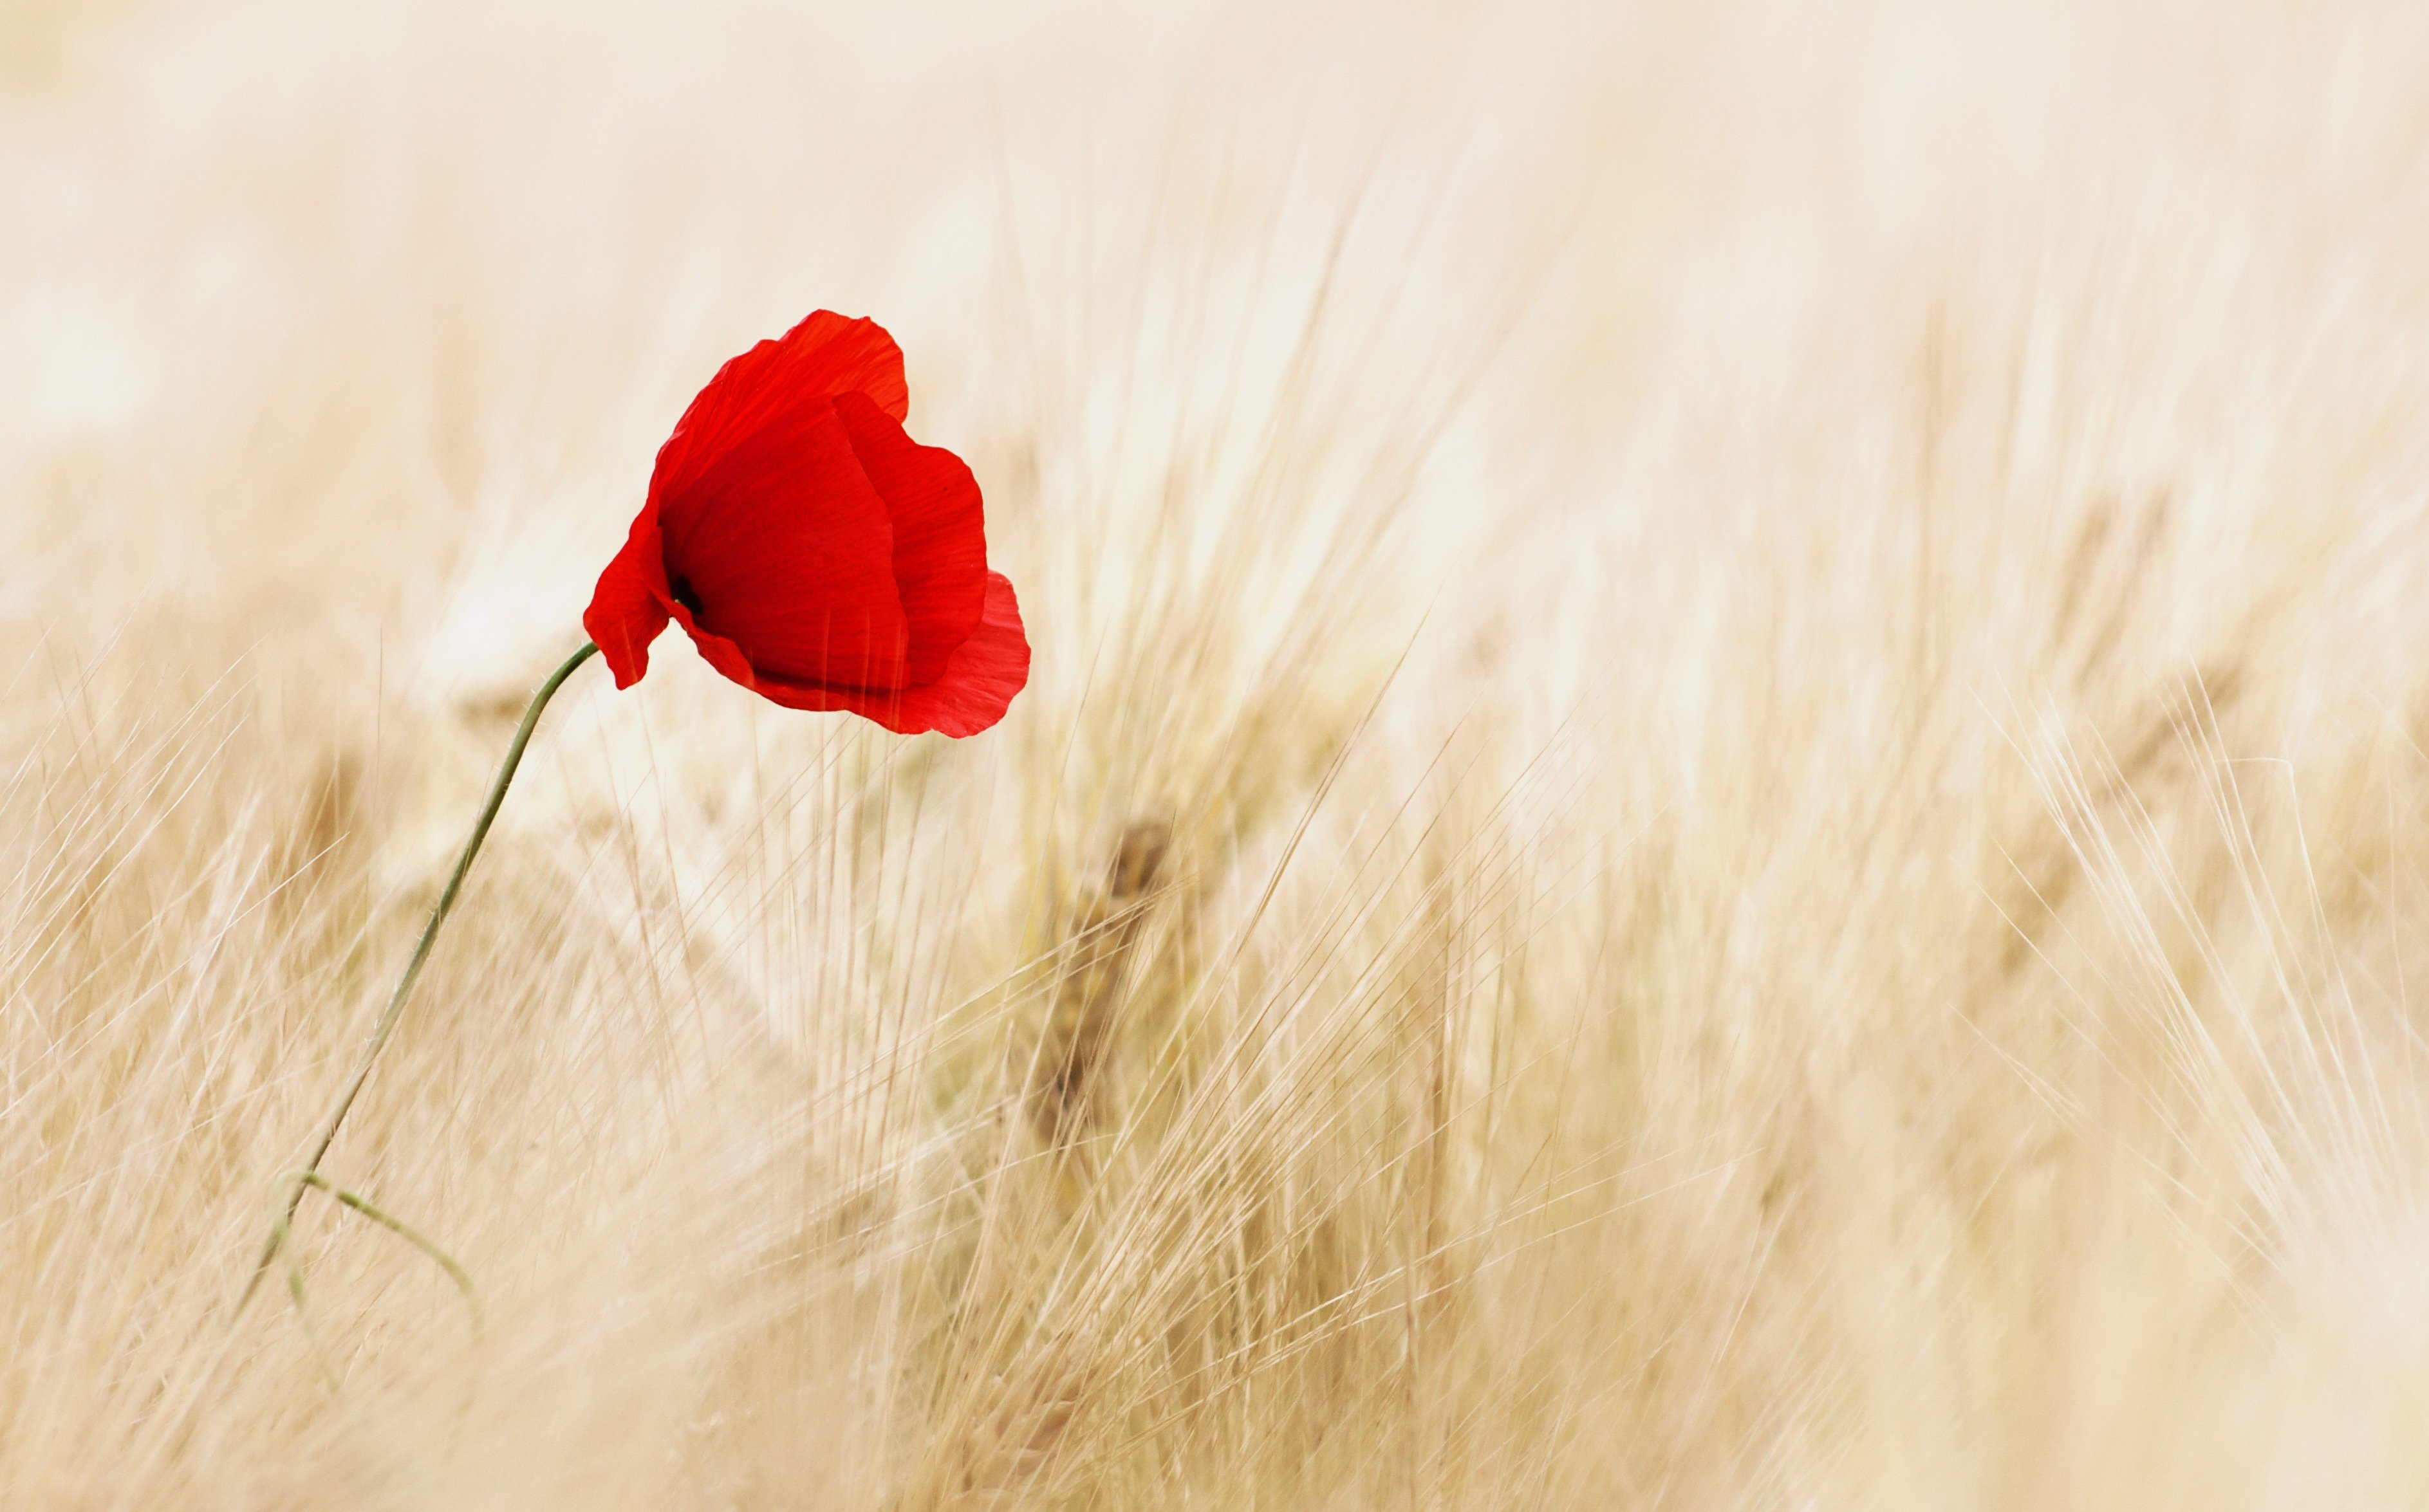 Cornell red and white cereals field ripe poppy